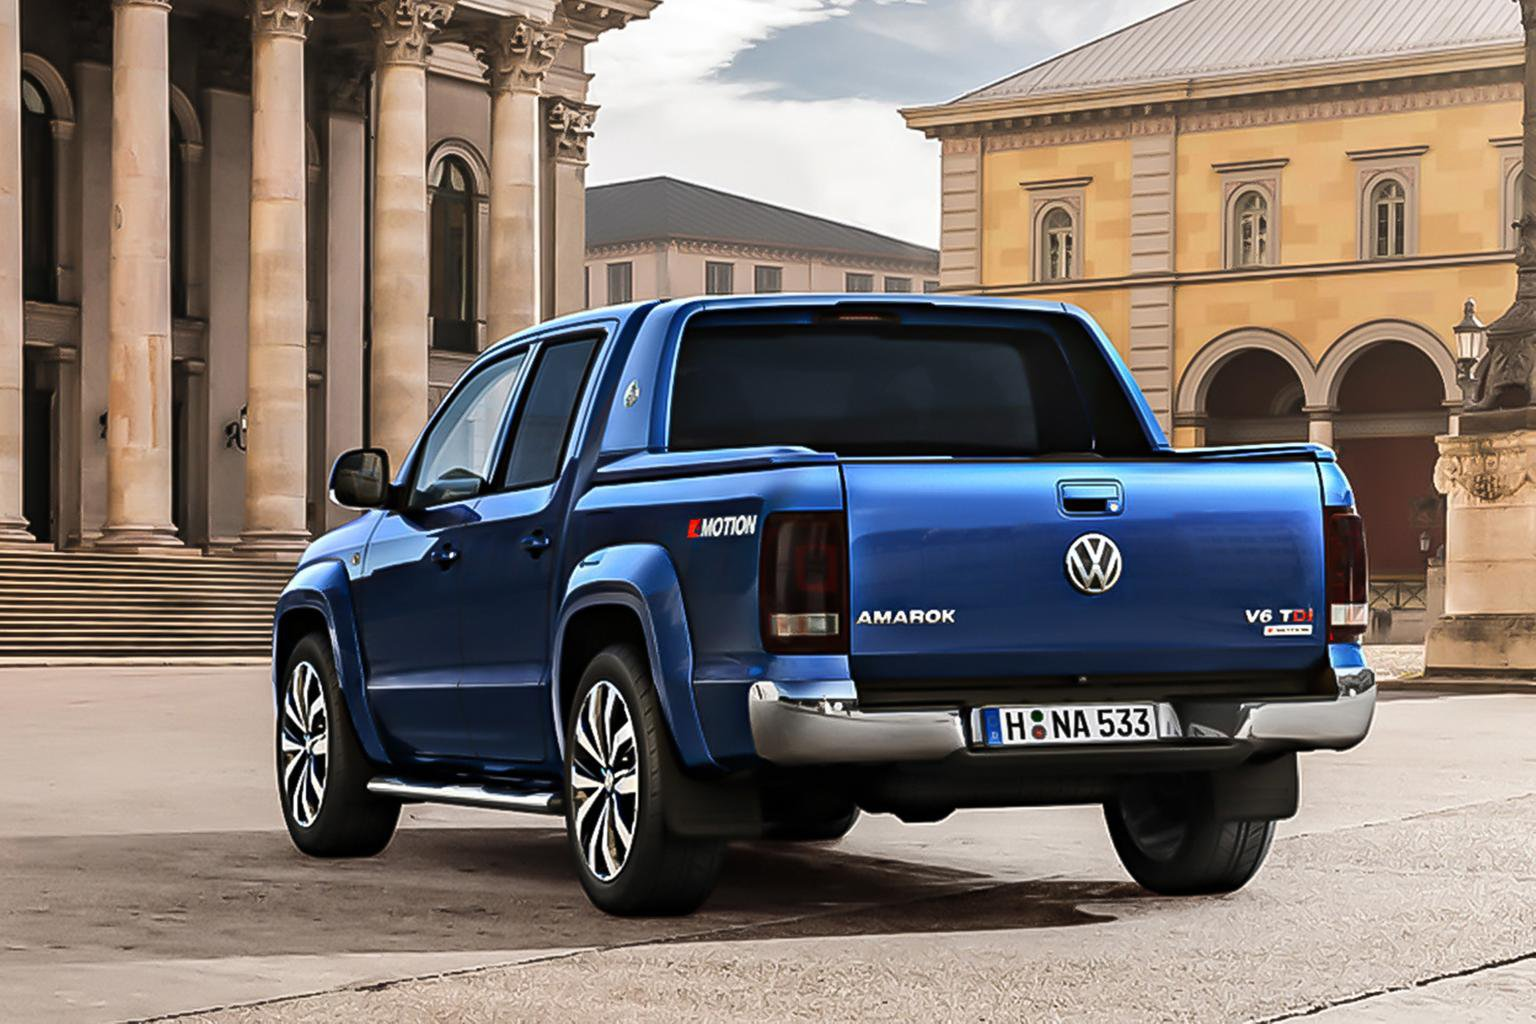 Facelifted Volkswagen Amarok pick-up truck revealed